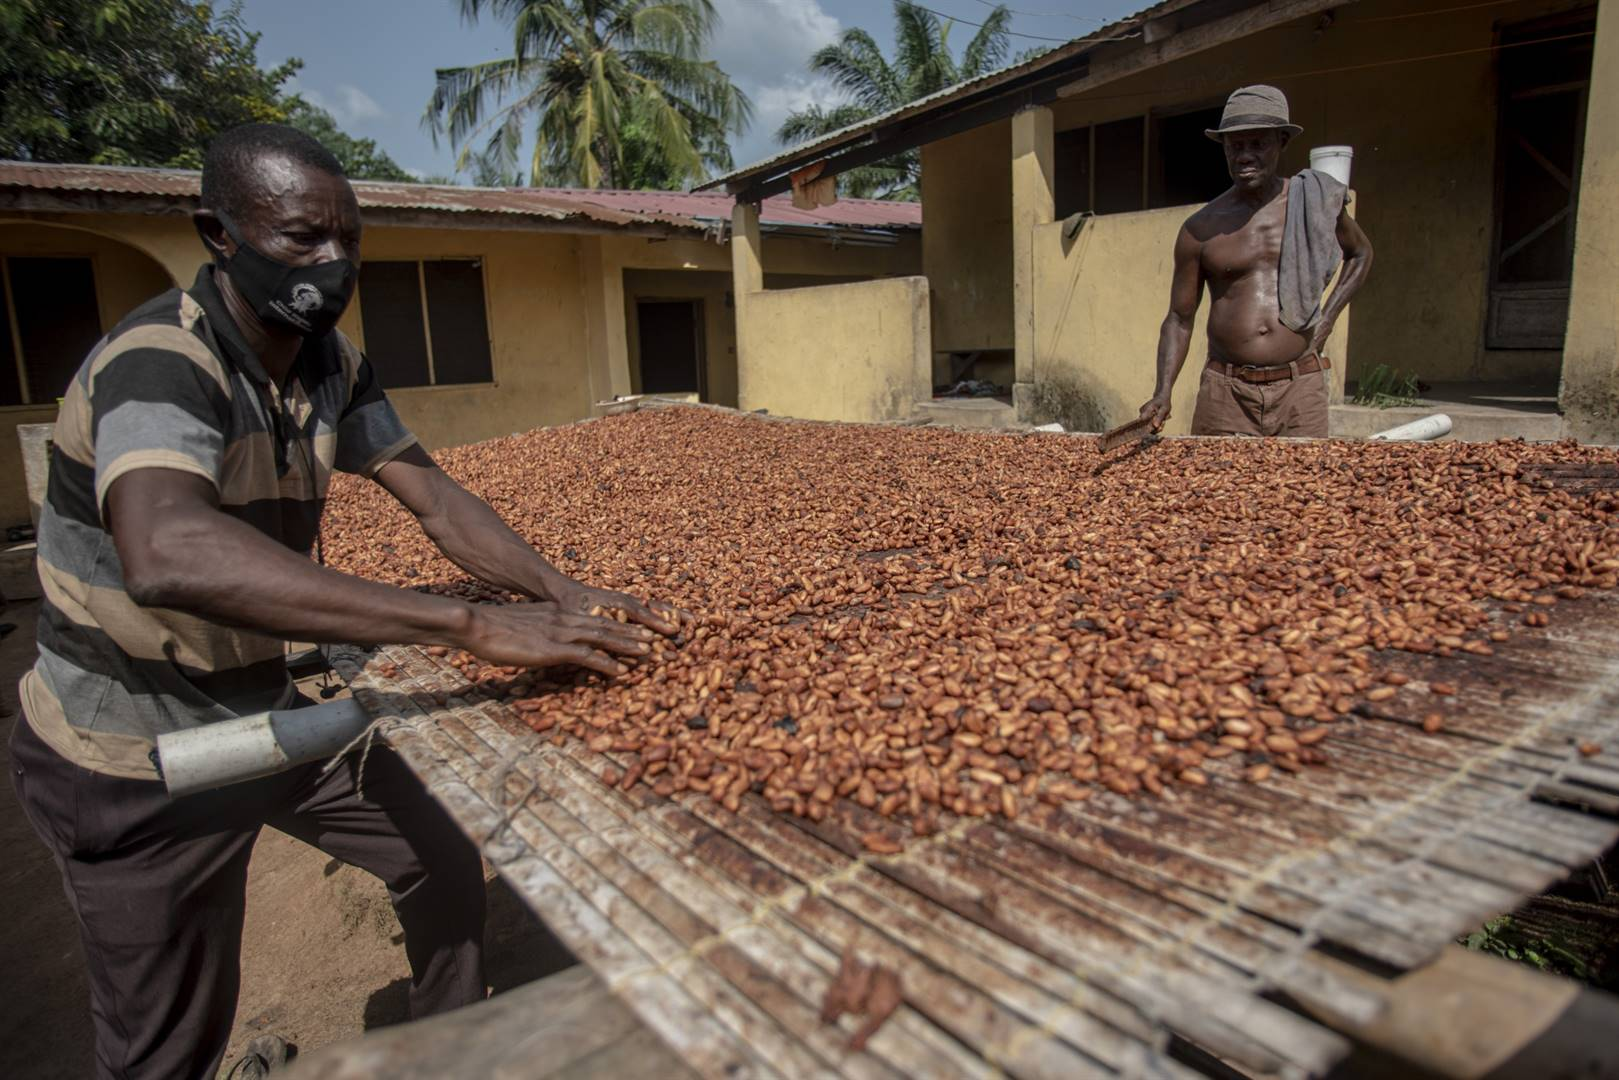 Cocoa farmers spread cocoa beans during the sun-drying process in Asikasu, Ghana. Farmers are battling to get he prices they are asking for the produce. Picture: Getty Images